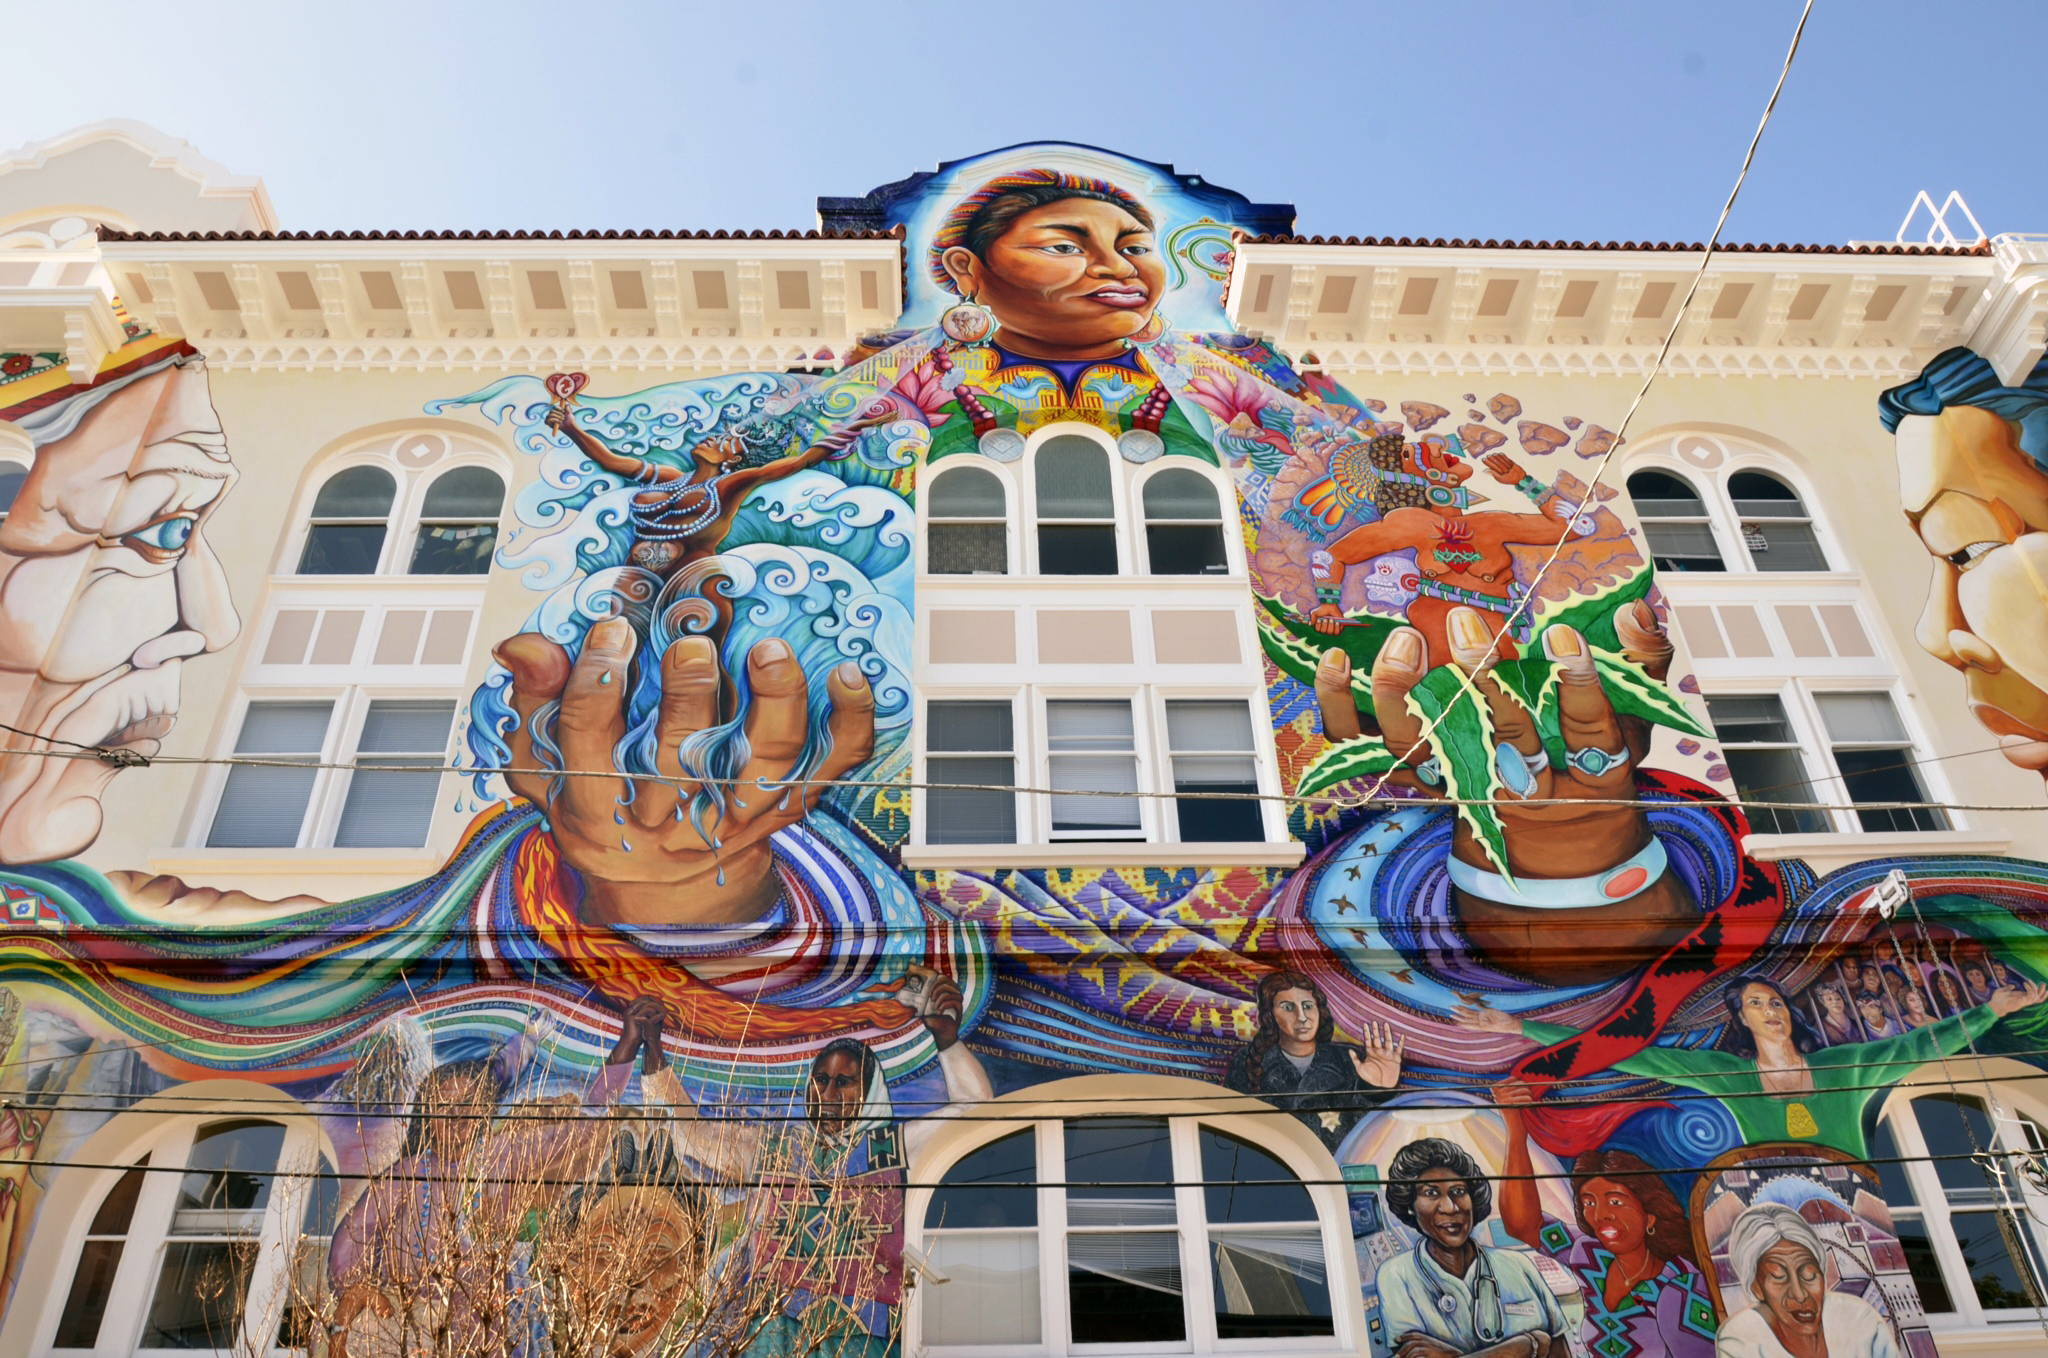 Maestra Peace mural protected by muralshield and worlds best graffiti coating